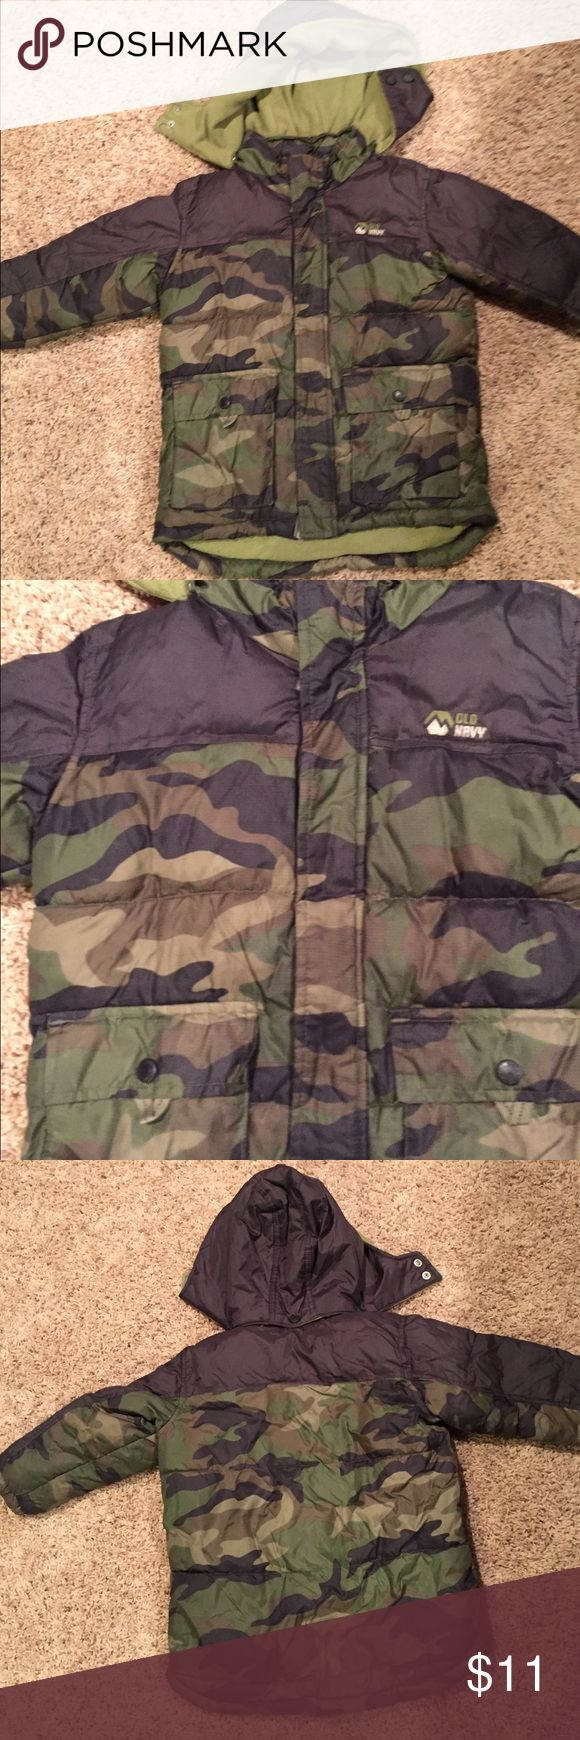 Old Navy Camouflage Winter Coat 4T Young boys winter coat. In excellent condition. Comes from a non-smoking home. Size 4T Old Navy Jackets & Coats